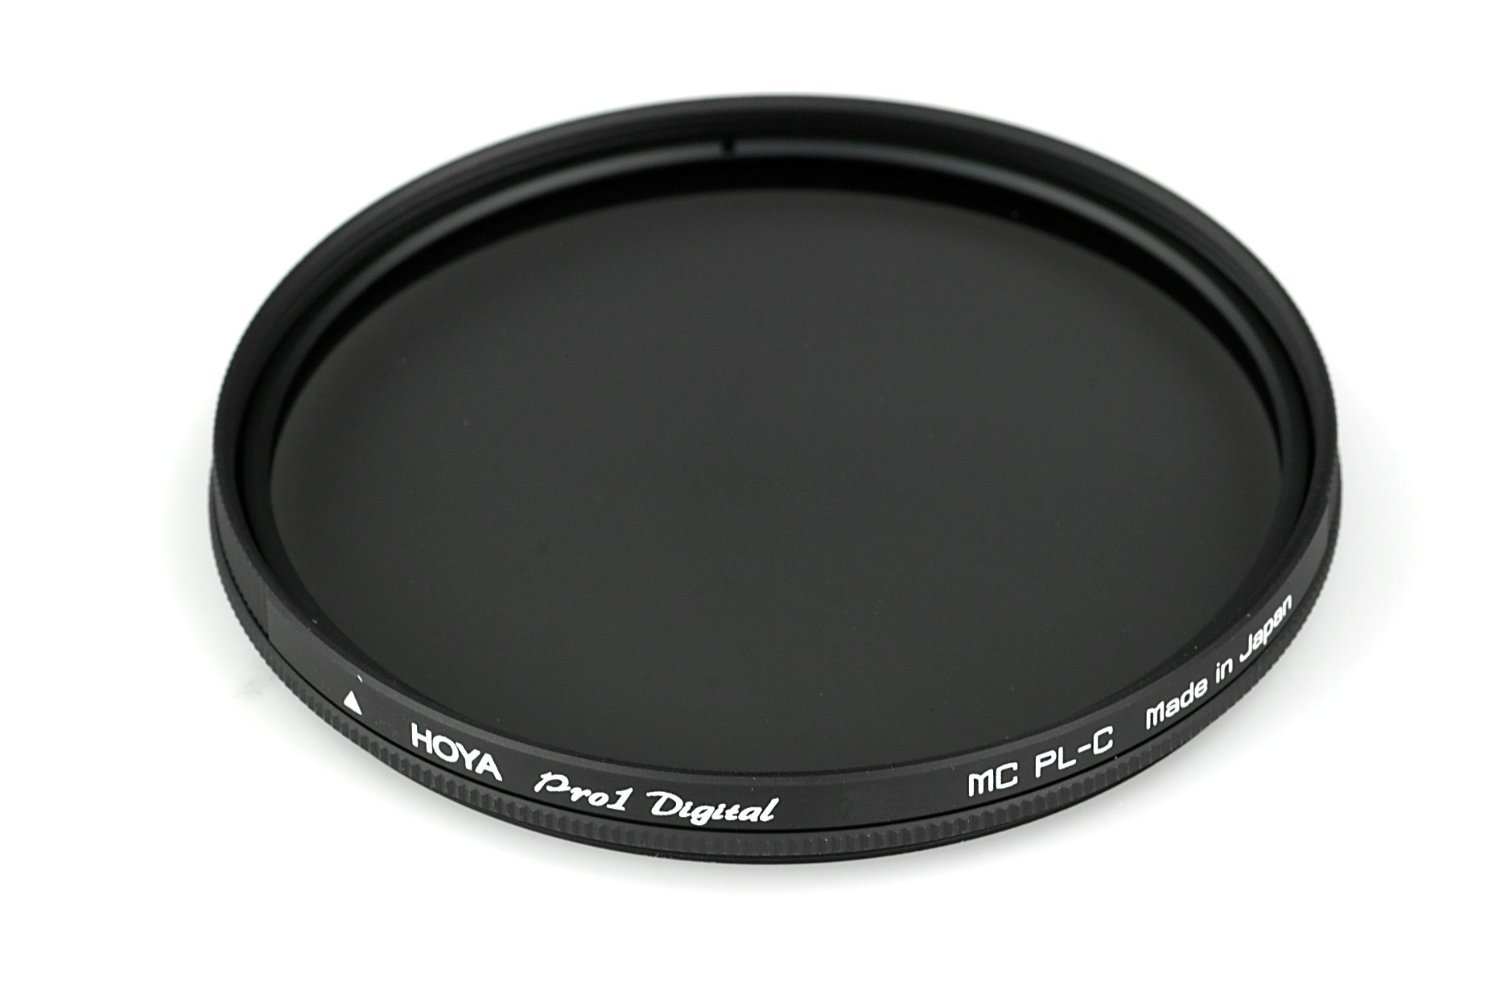 Светофильтр HOYA PL-CIR PRO1 Digital 58 mm